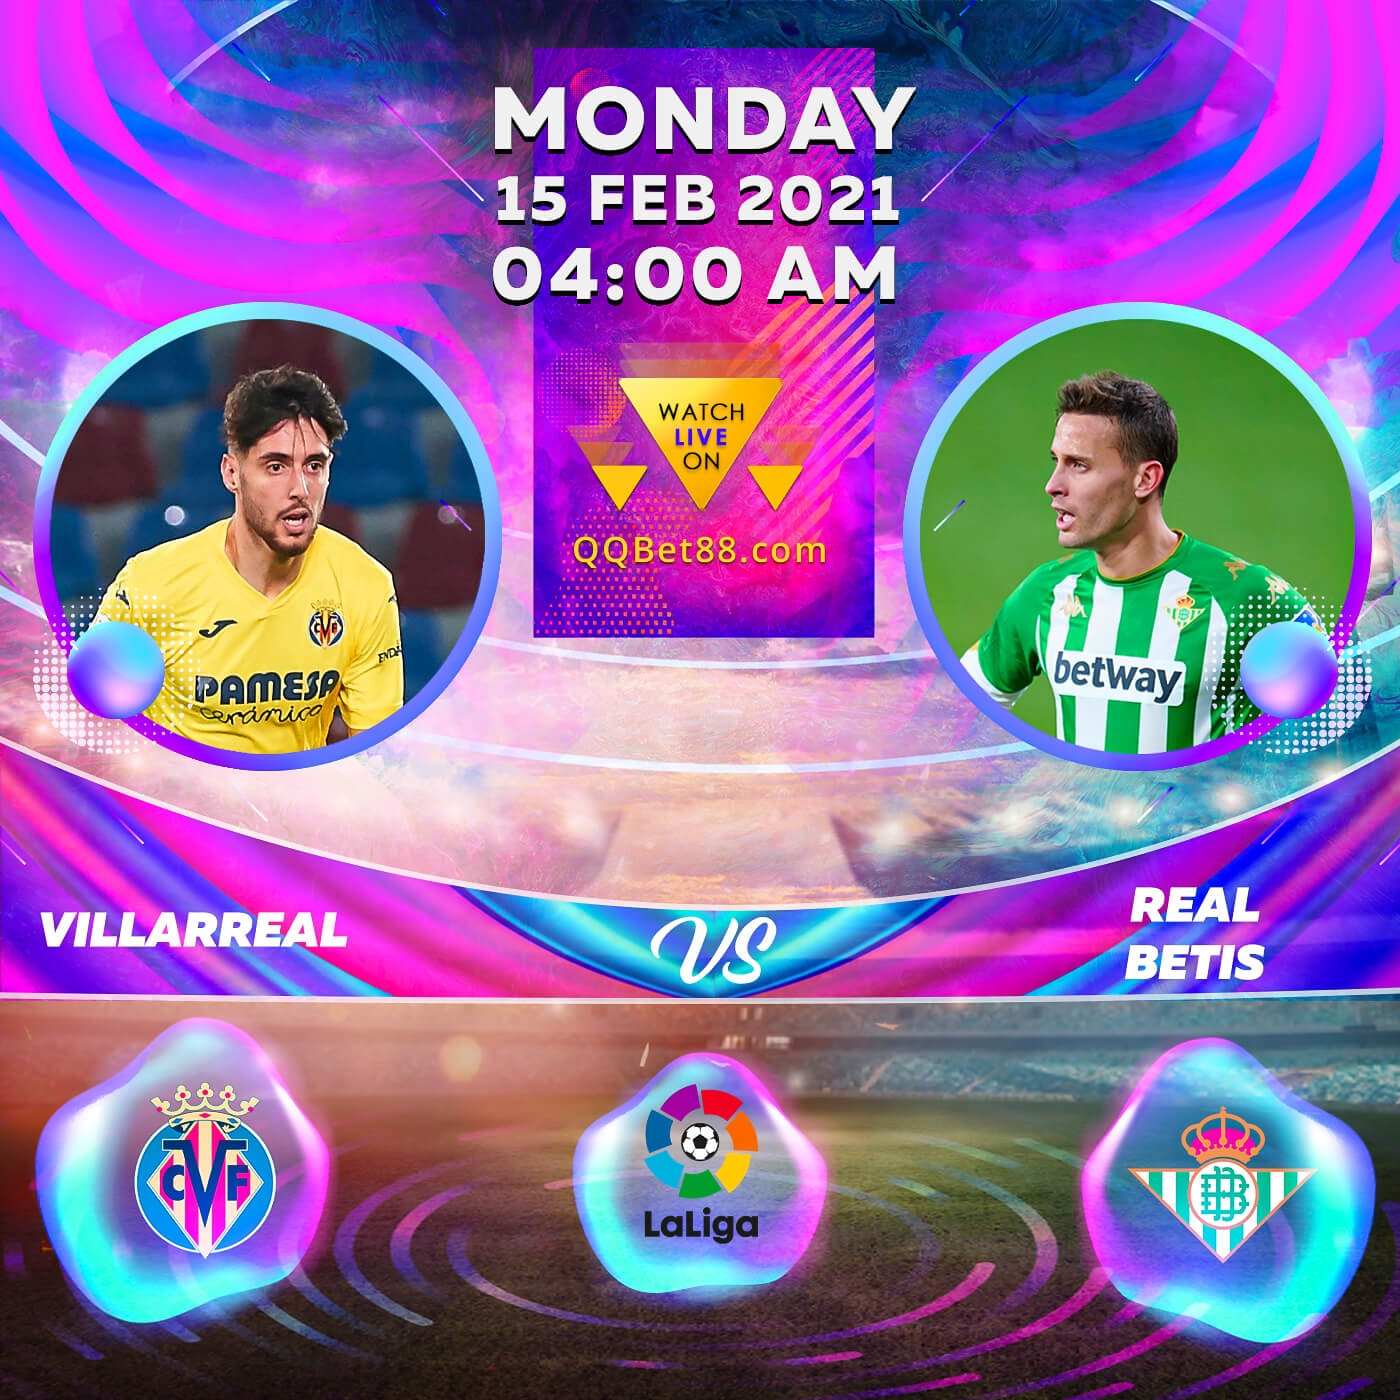 Villarreal VS Real Betis